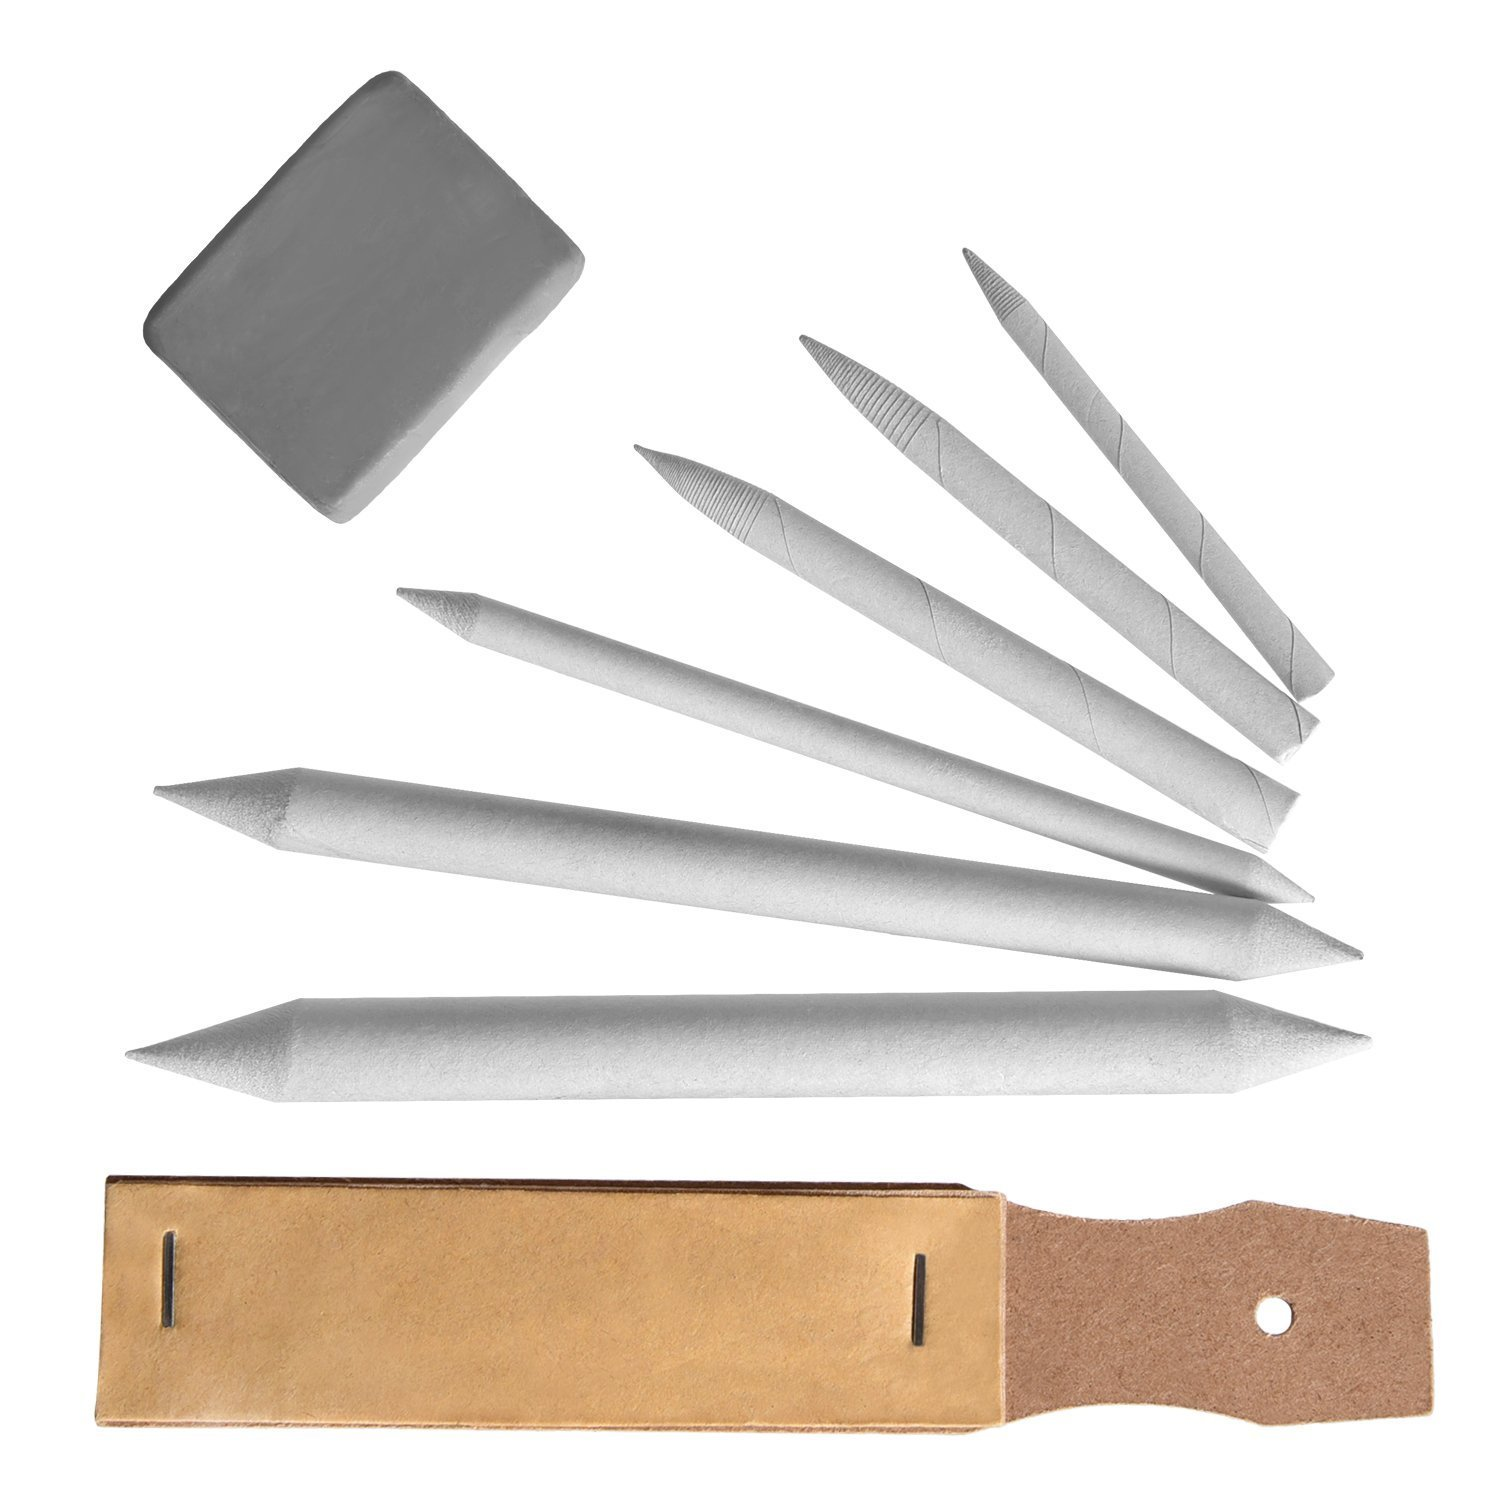 Drawing Blending Stumps- Stationery Set - Drawing Accessories Set Blending Stumps and Tortillions Pencil Sandpaper Pointer with Kneaded Eraser, 8 Pieces